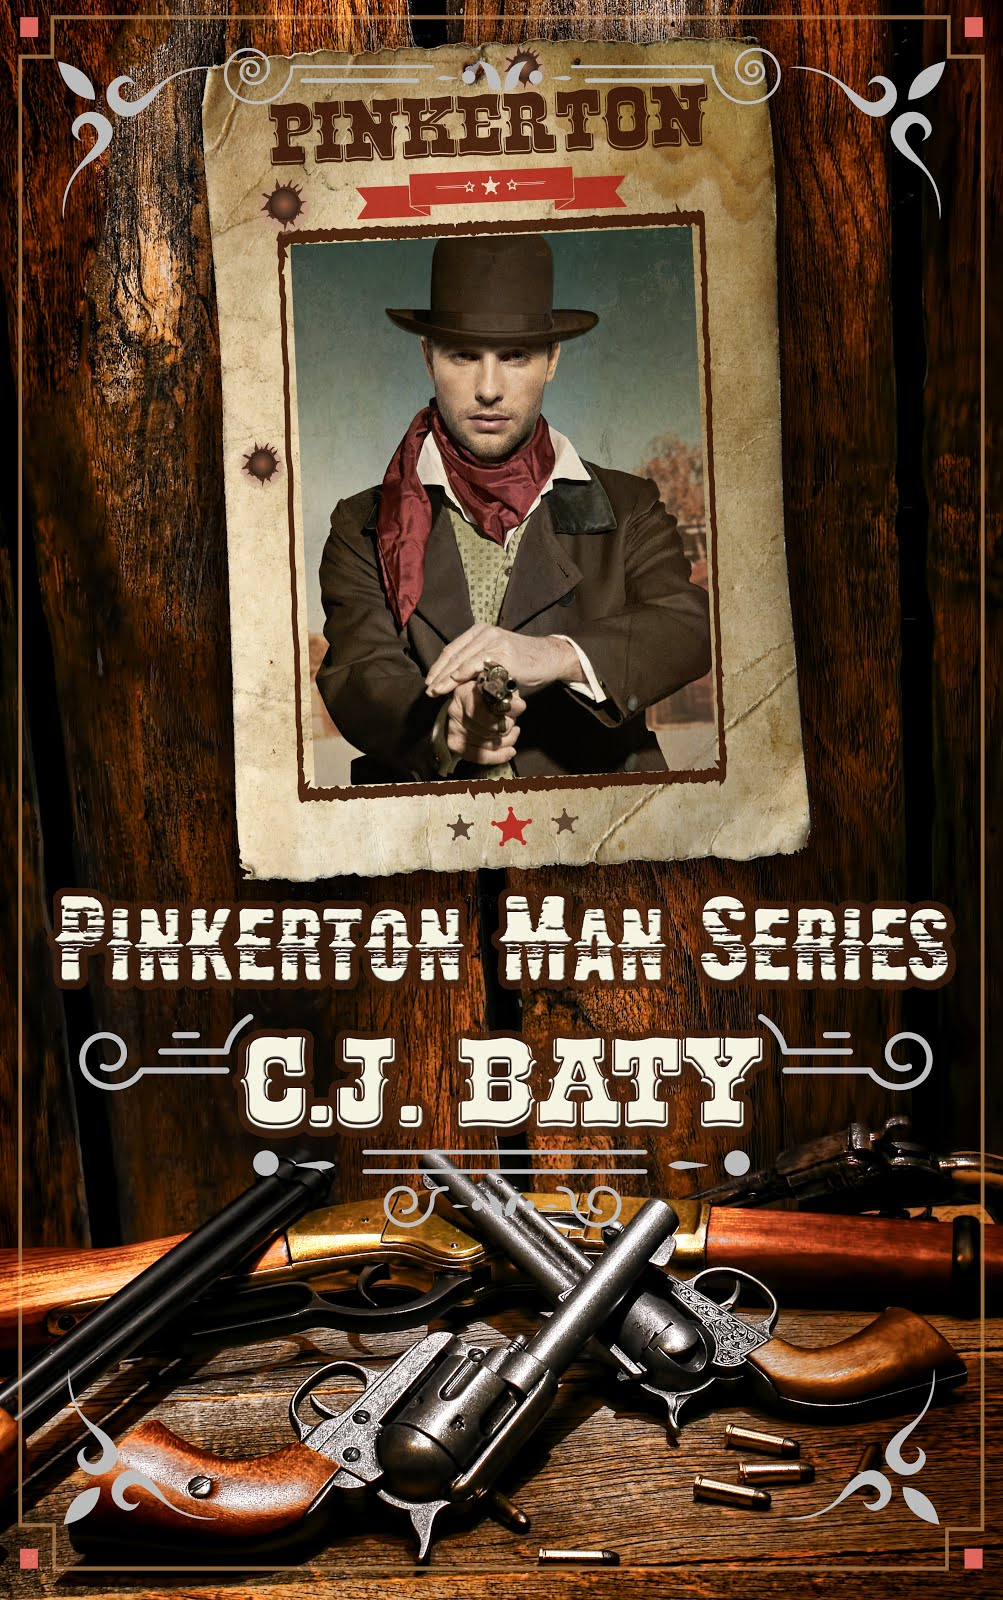 The Pinkerton Man Series Bk ! & 2